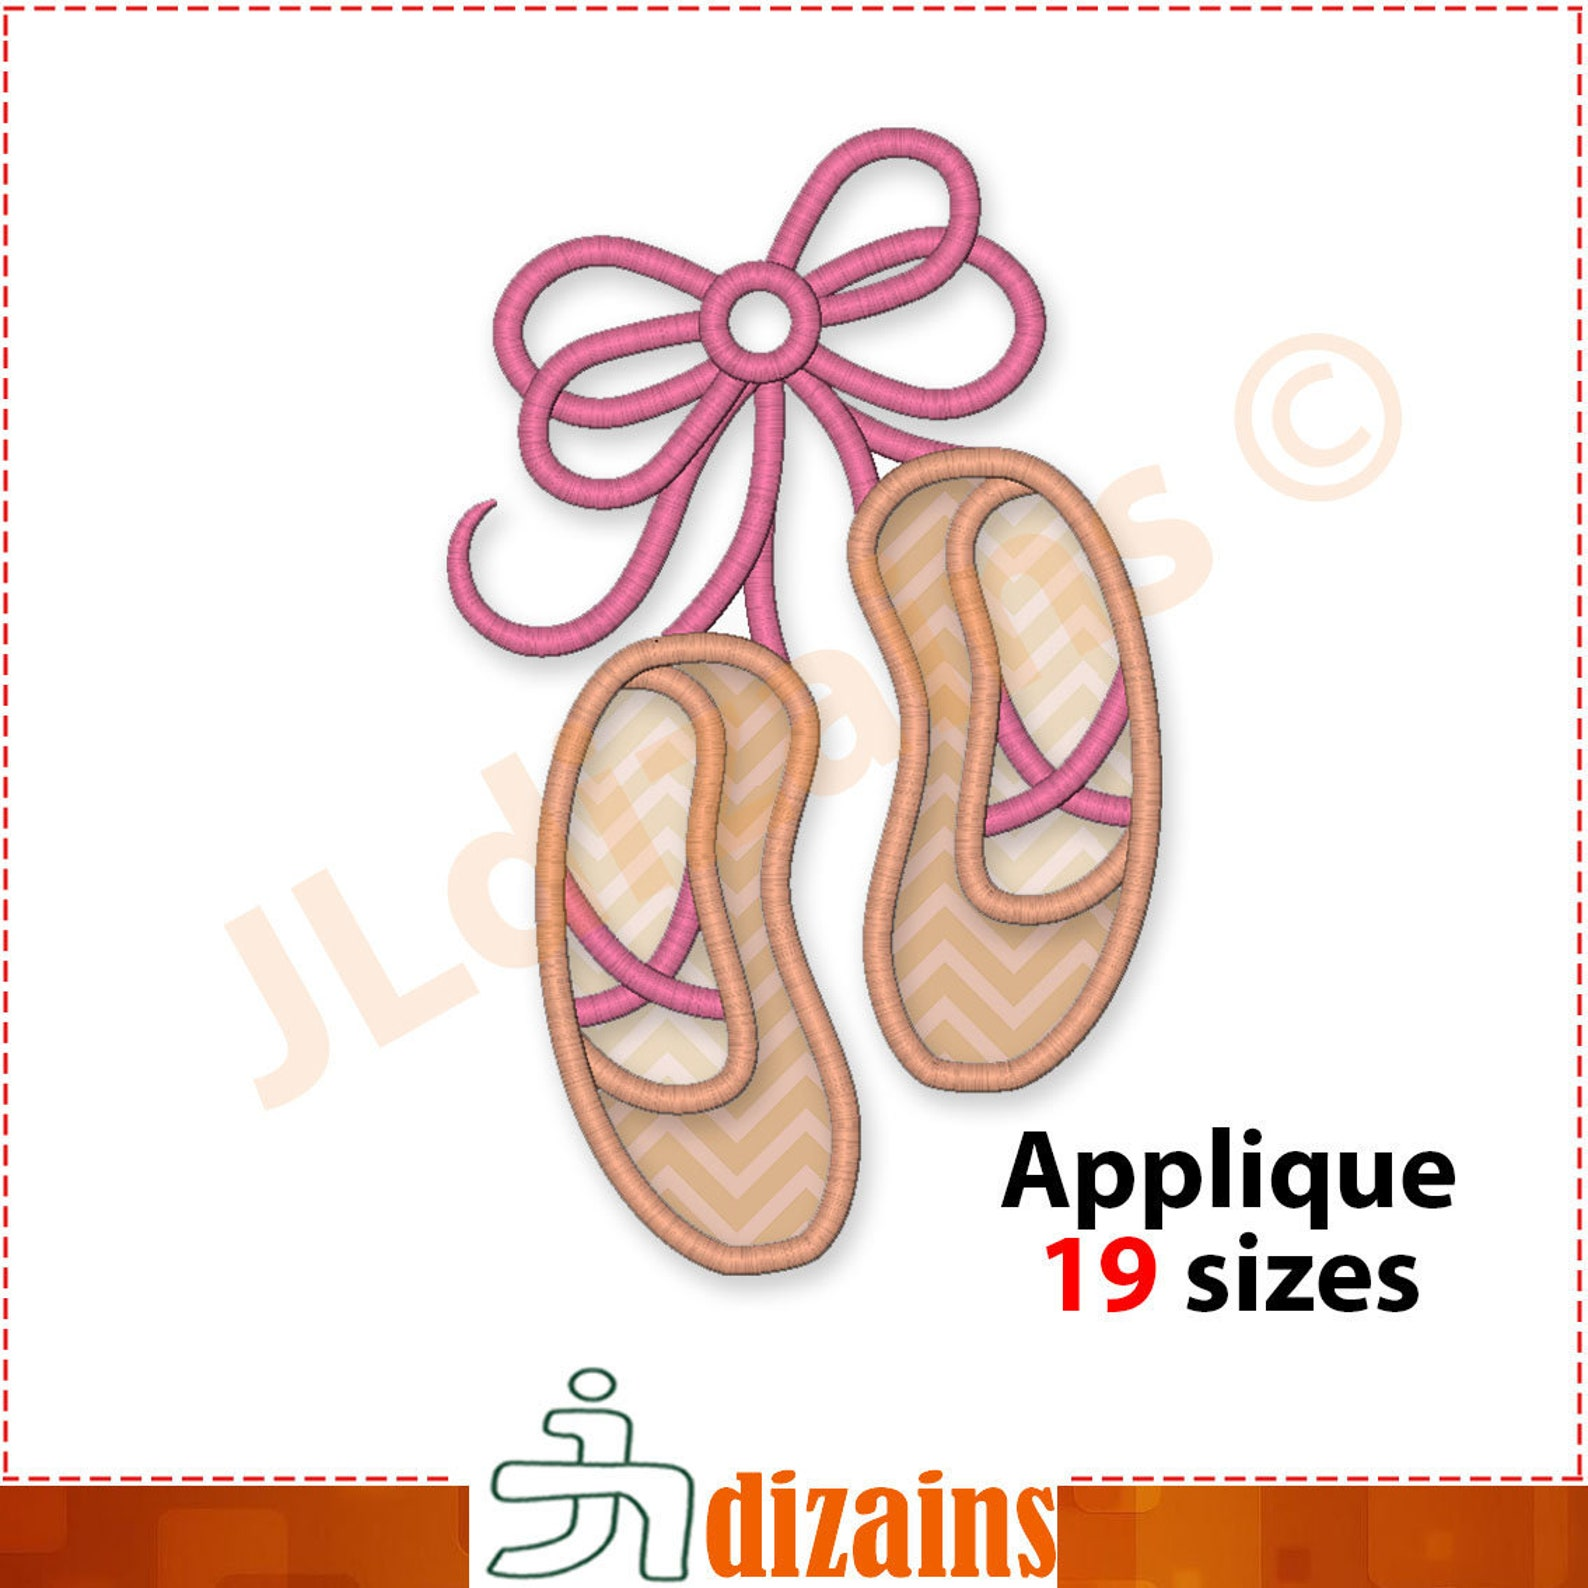 ballet shoes applique embroidery design. ballet slippers embroidery design. ballet applique. ballet embroidery. machine embroide